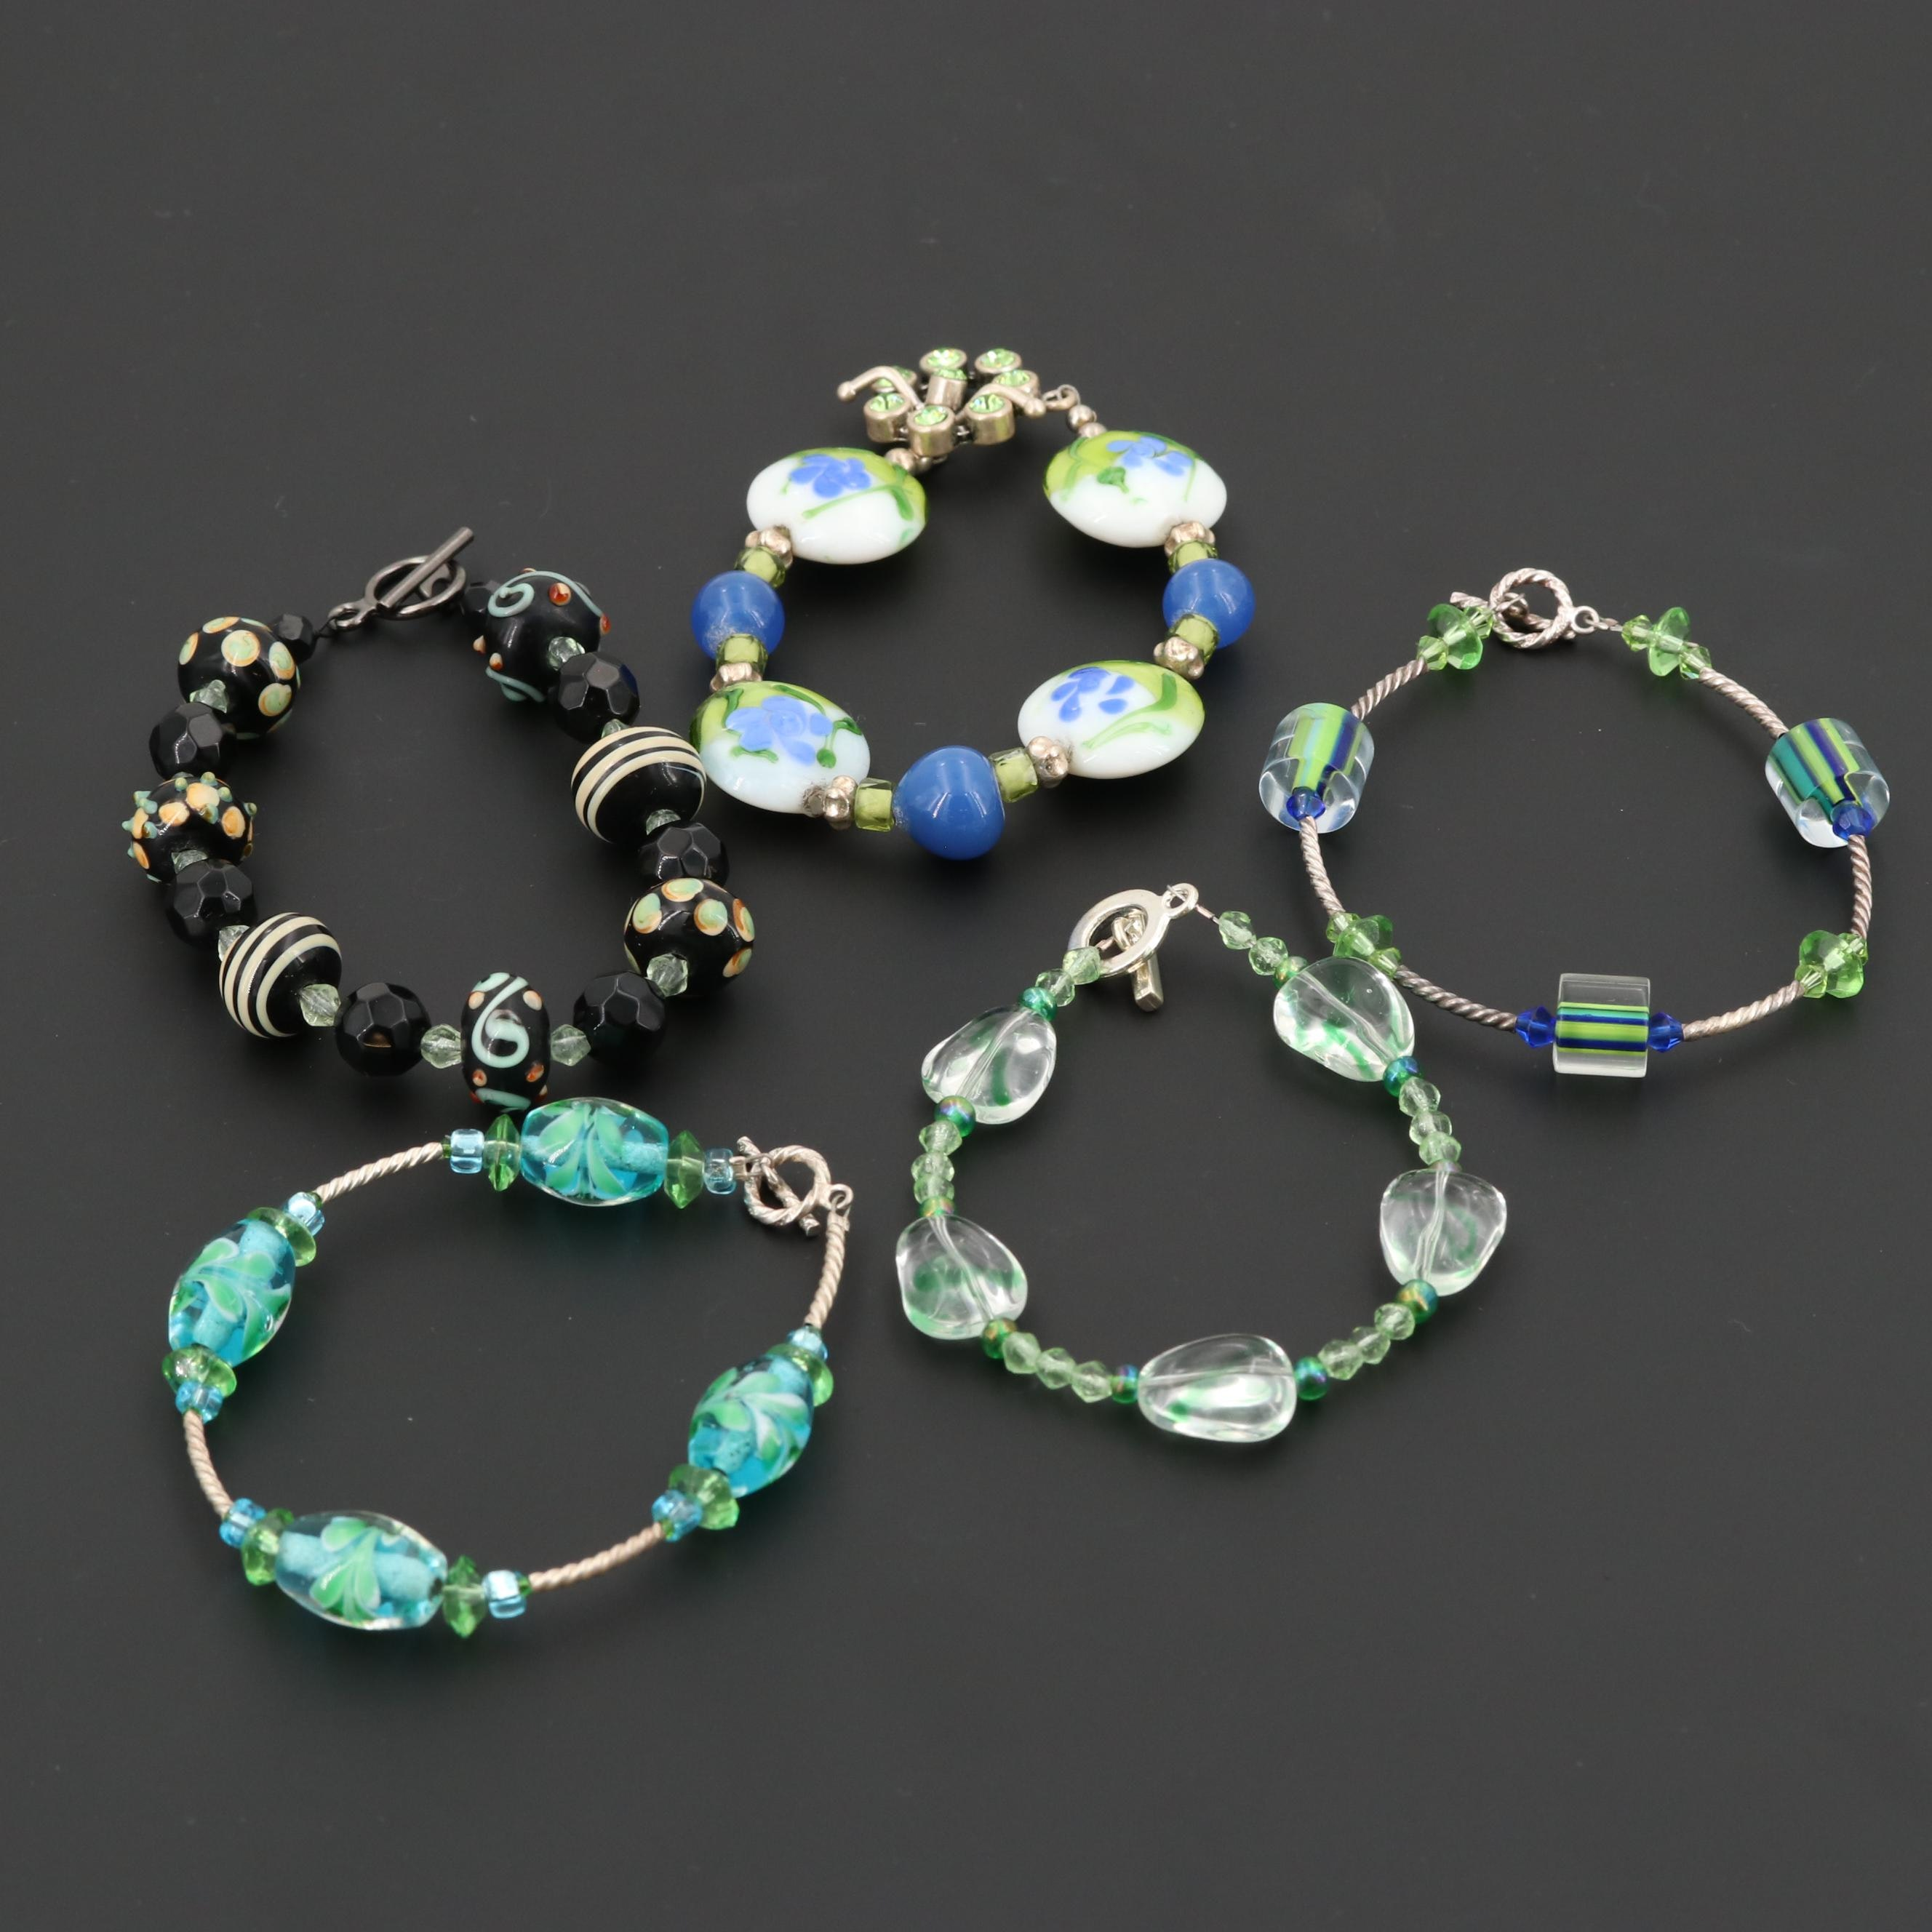 Collection of Sterling Silver and Silver Tone Multi Colored Glass Bead Bracelets